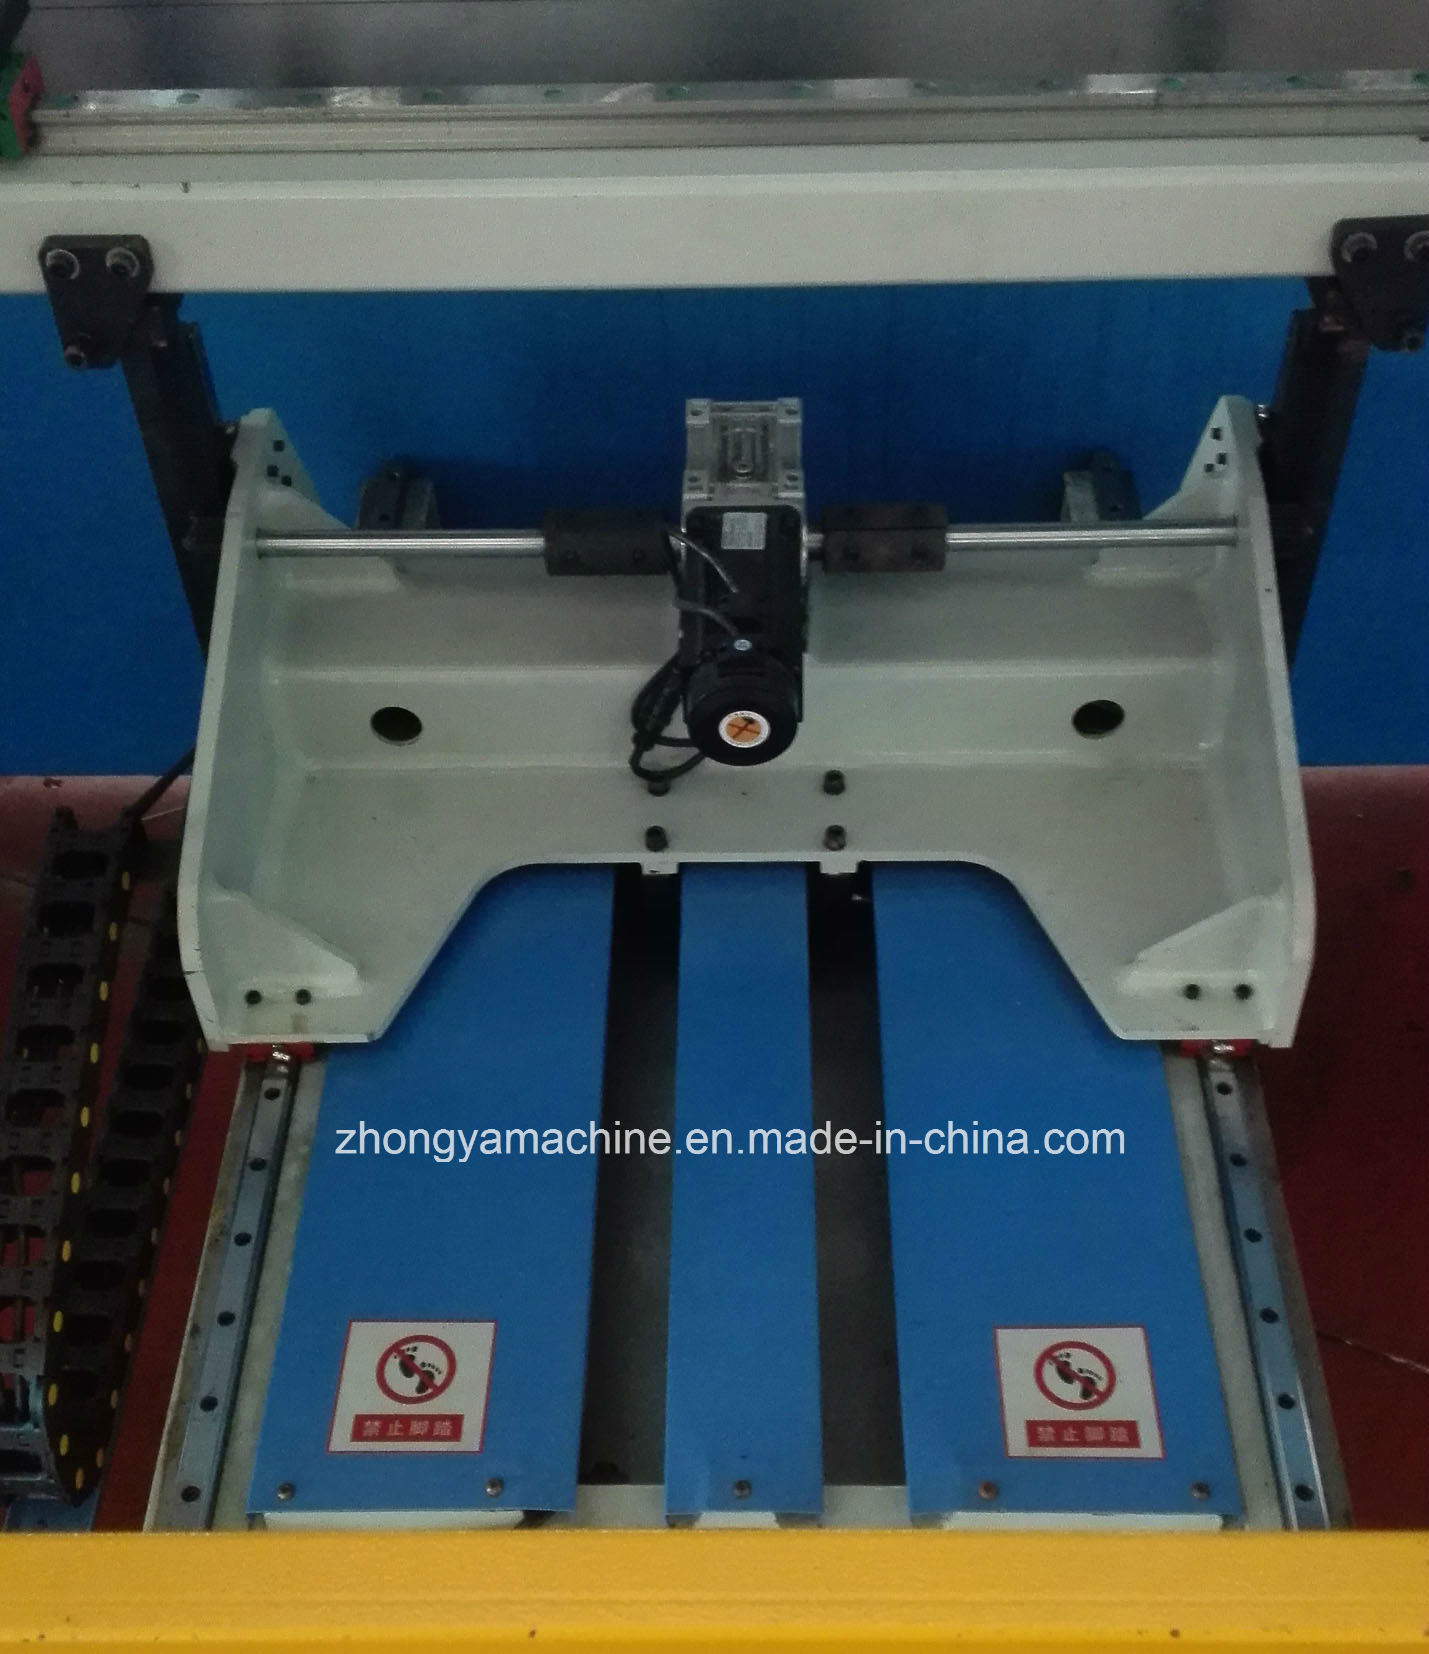 CNC Press Brake Bending Machine with 66t System Pbh-125t/2500